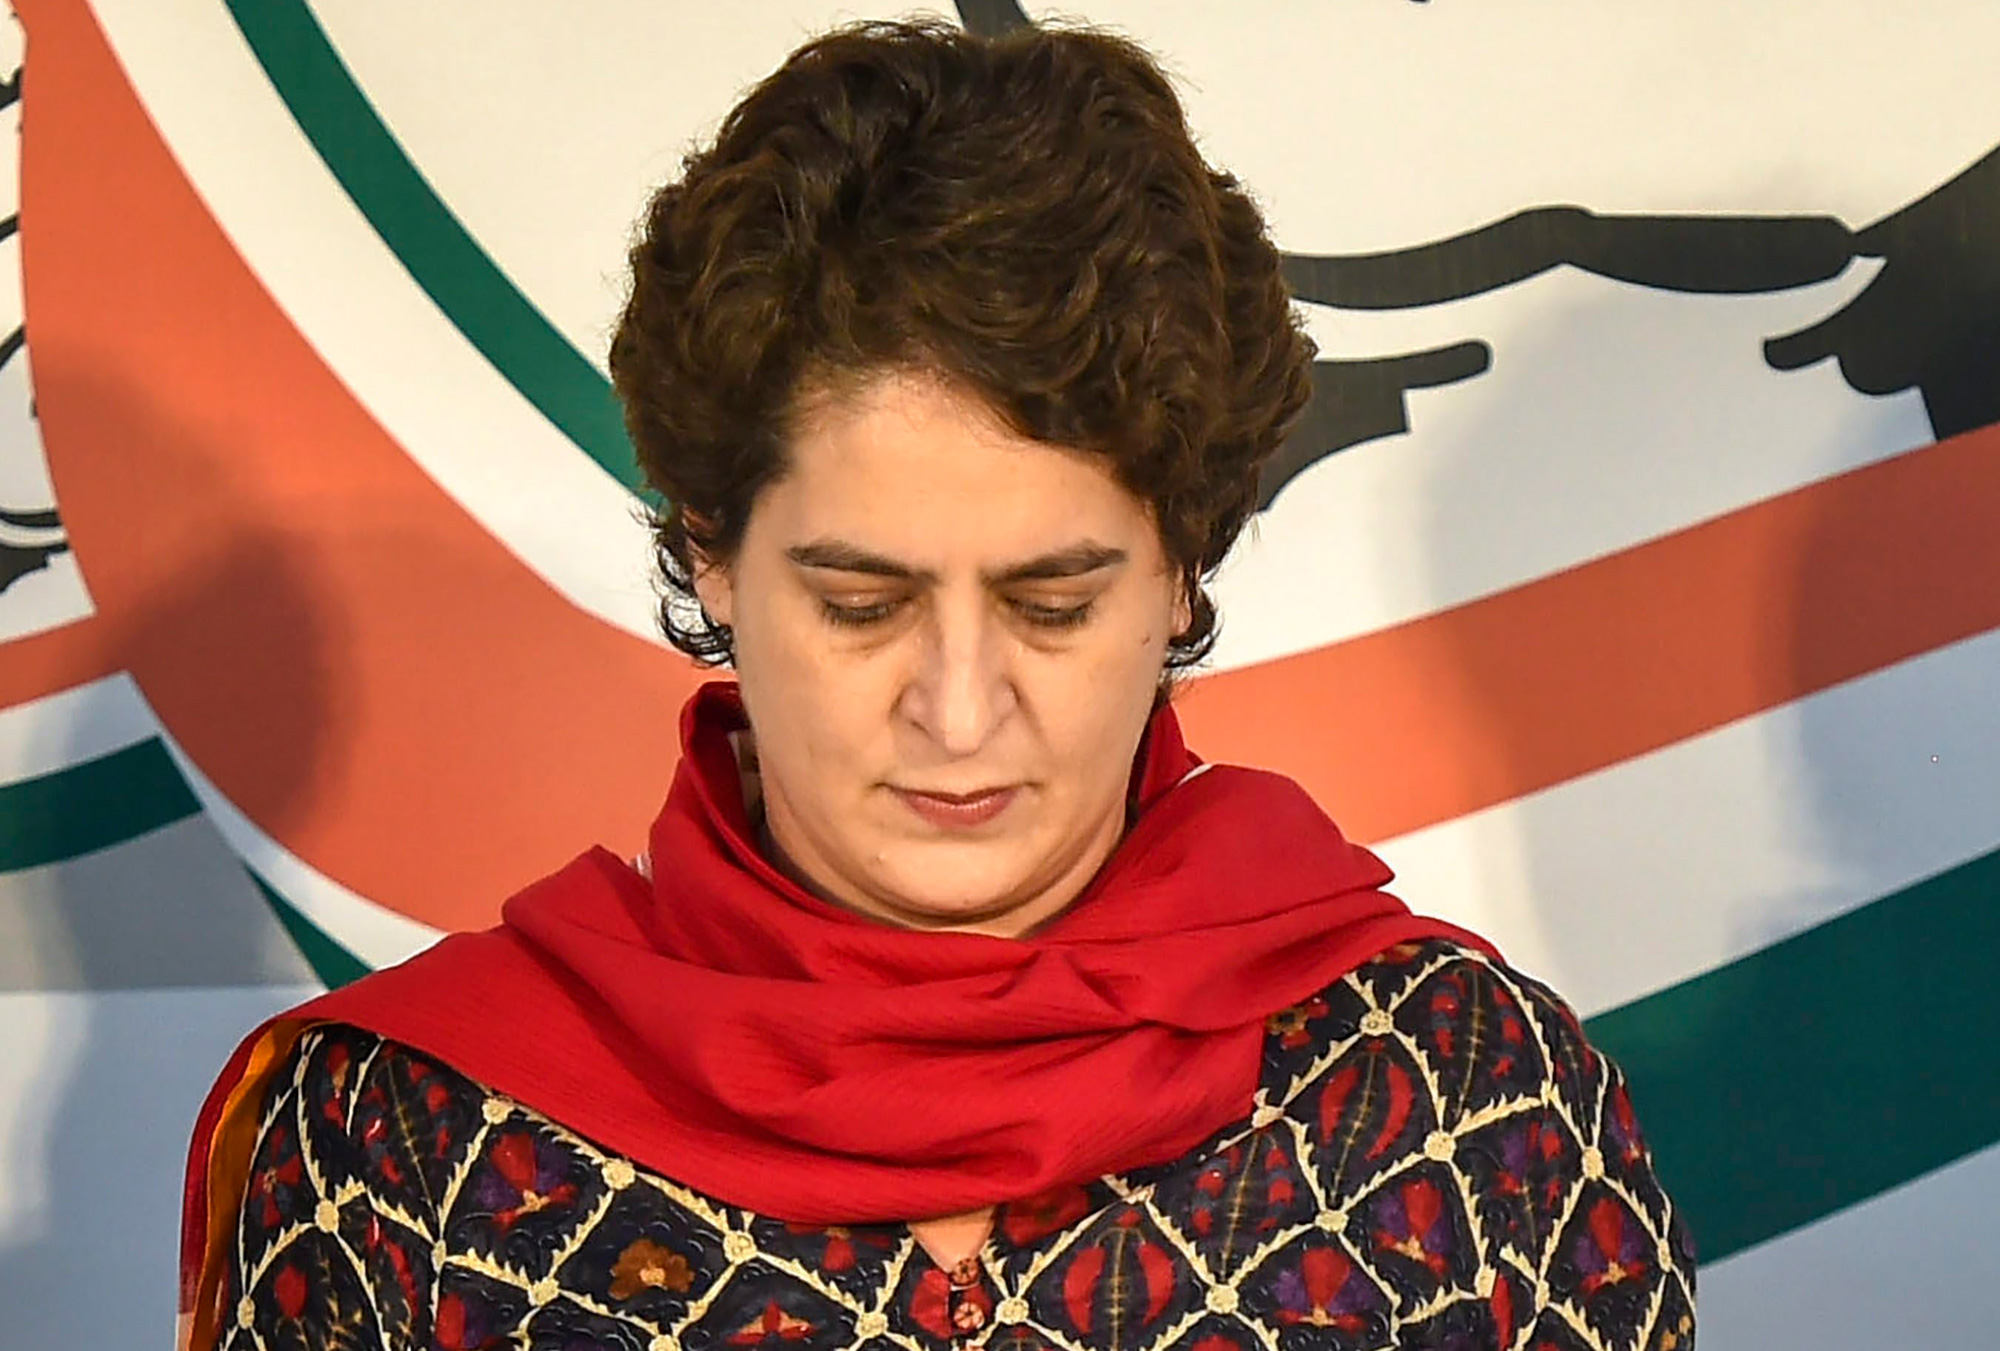 Congress general secretary Priyanka Gandhi Vadra observes a two minute silence over the Pulwama militant attack on CRPF convoy, at the party office in Lucknow on Thursday, February 14, 2019.